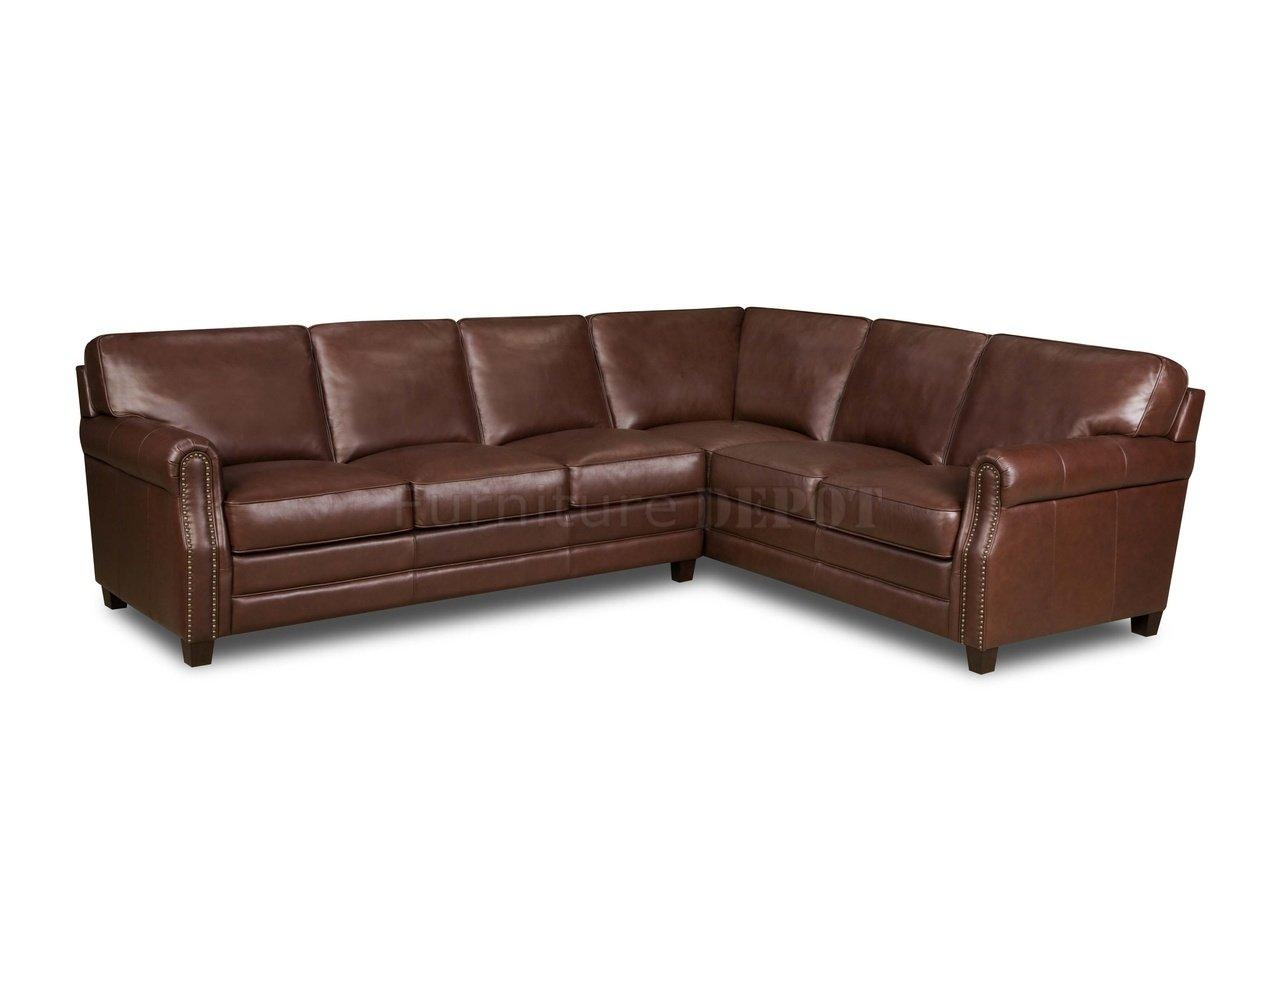 Traditional Sectional Sofa: Beautiful Pictures, Photos Of Intended For Traditional Sectional Sofas (Image 17 of 20)